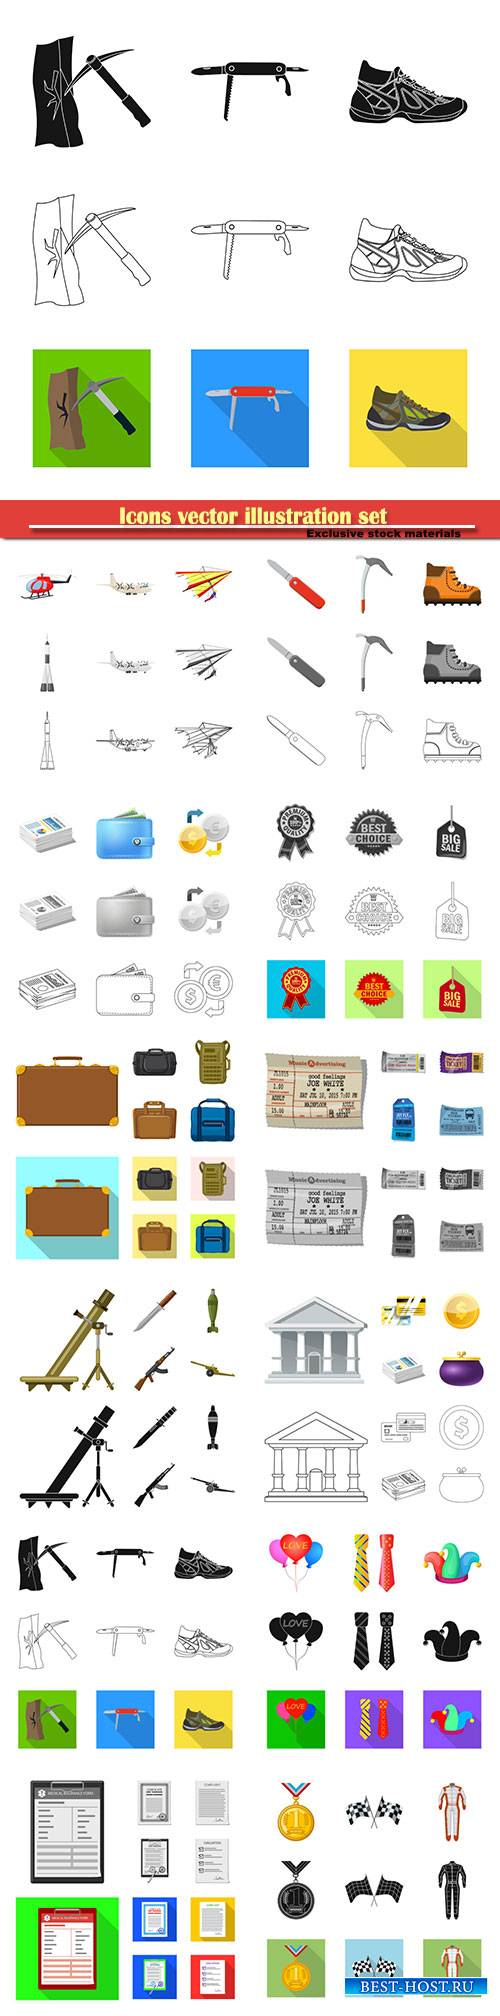 Icons vector illustration set # 2